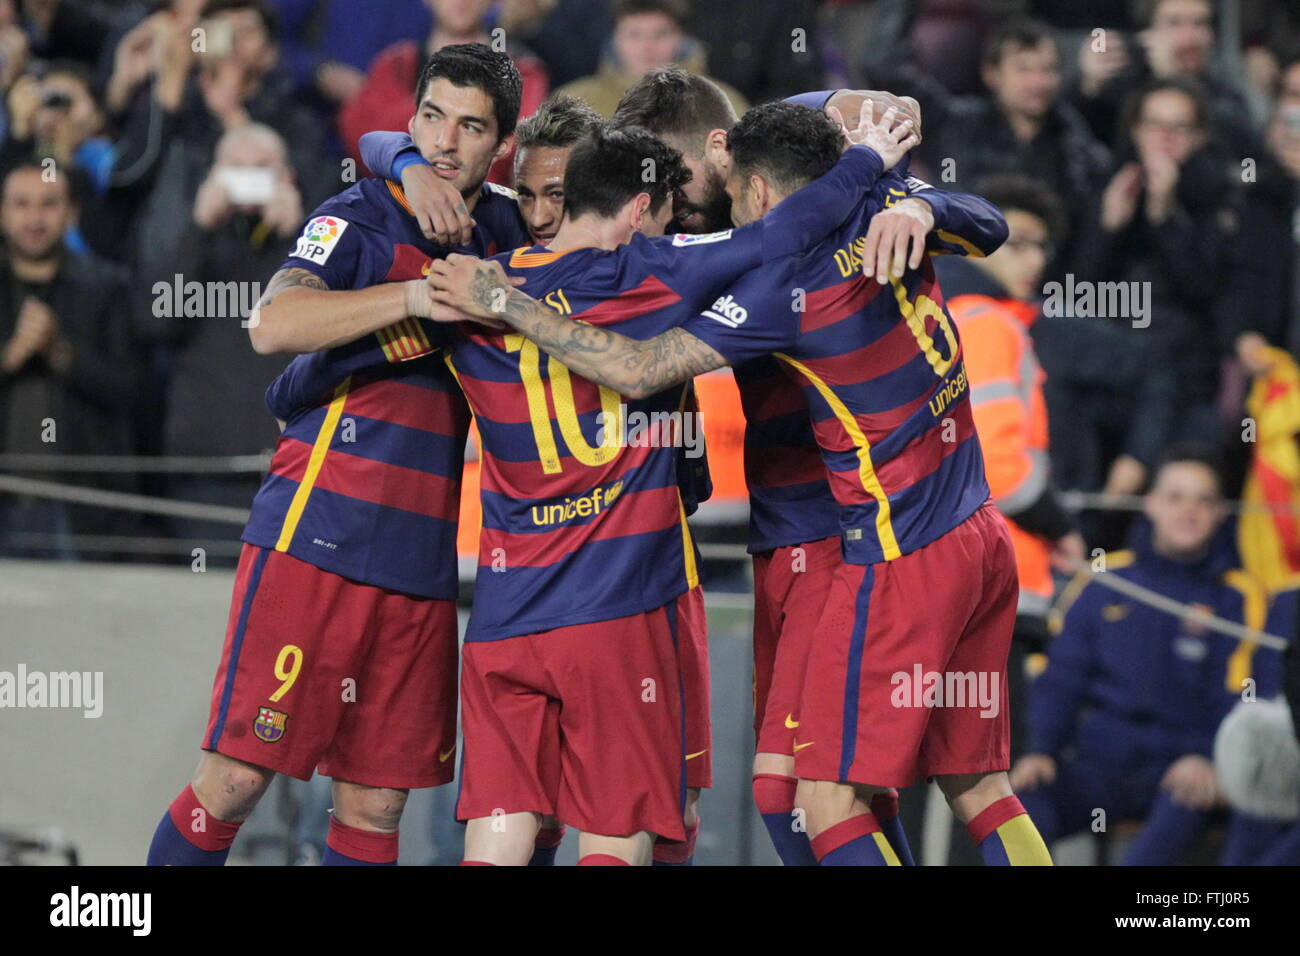 Barcelona, Spain, January 27, 2016: King's Cup: congratulation after the goal of Gerard Piqué during the - Stock Image